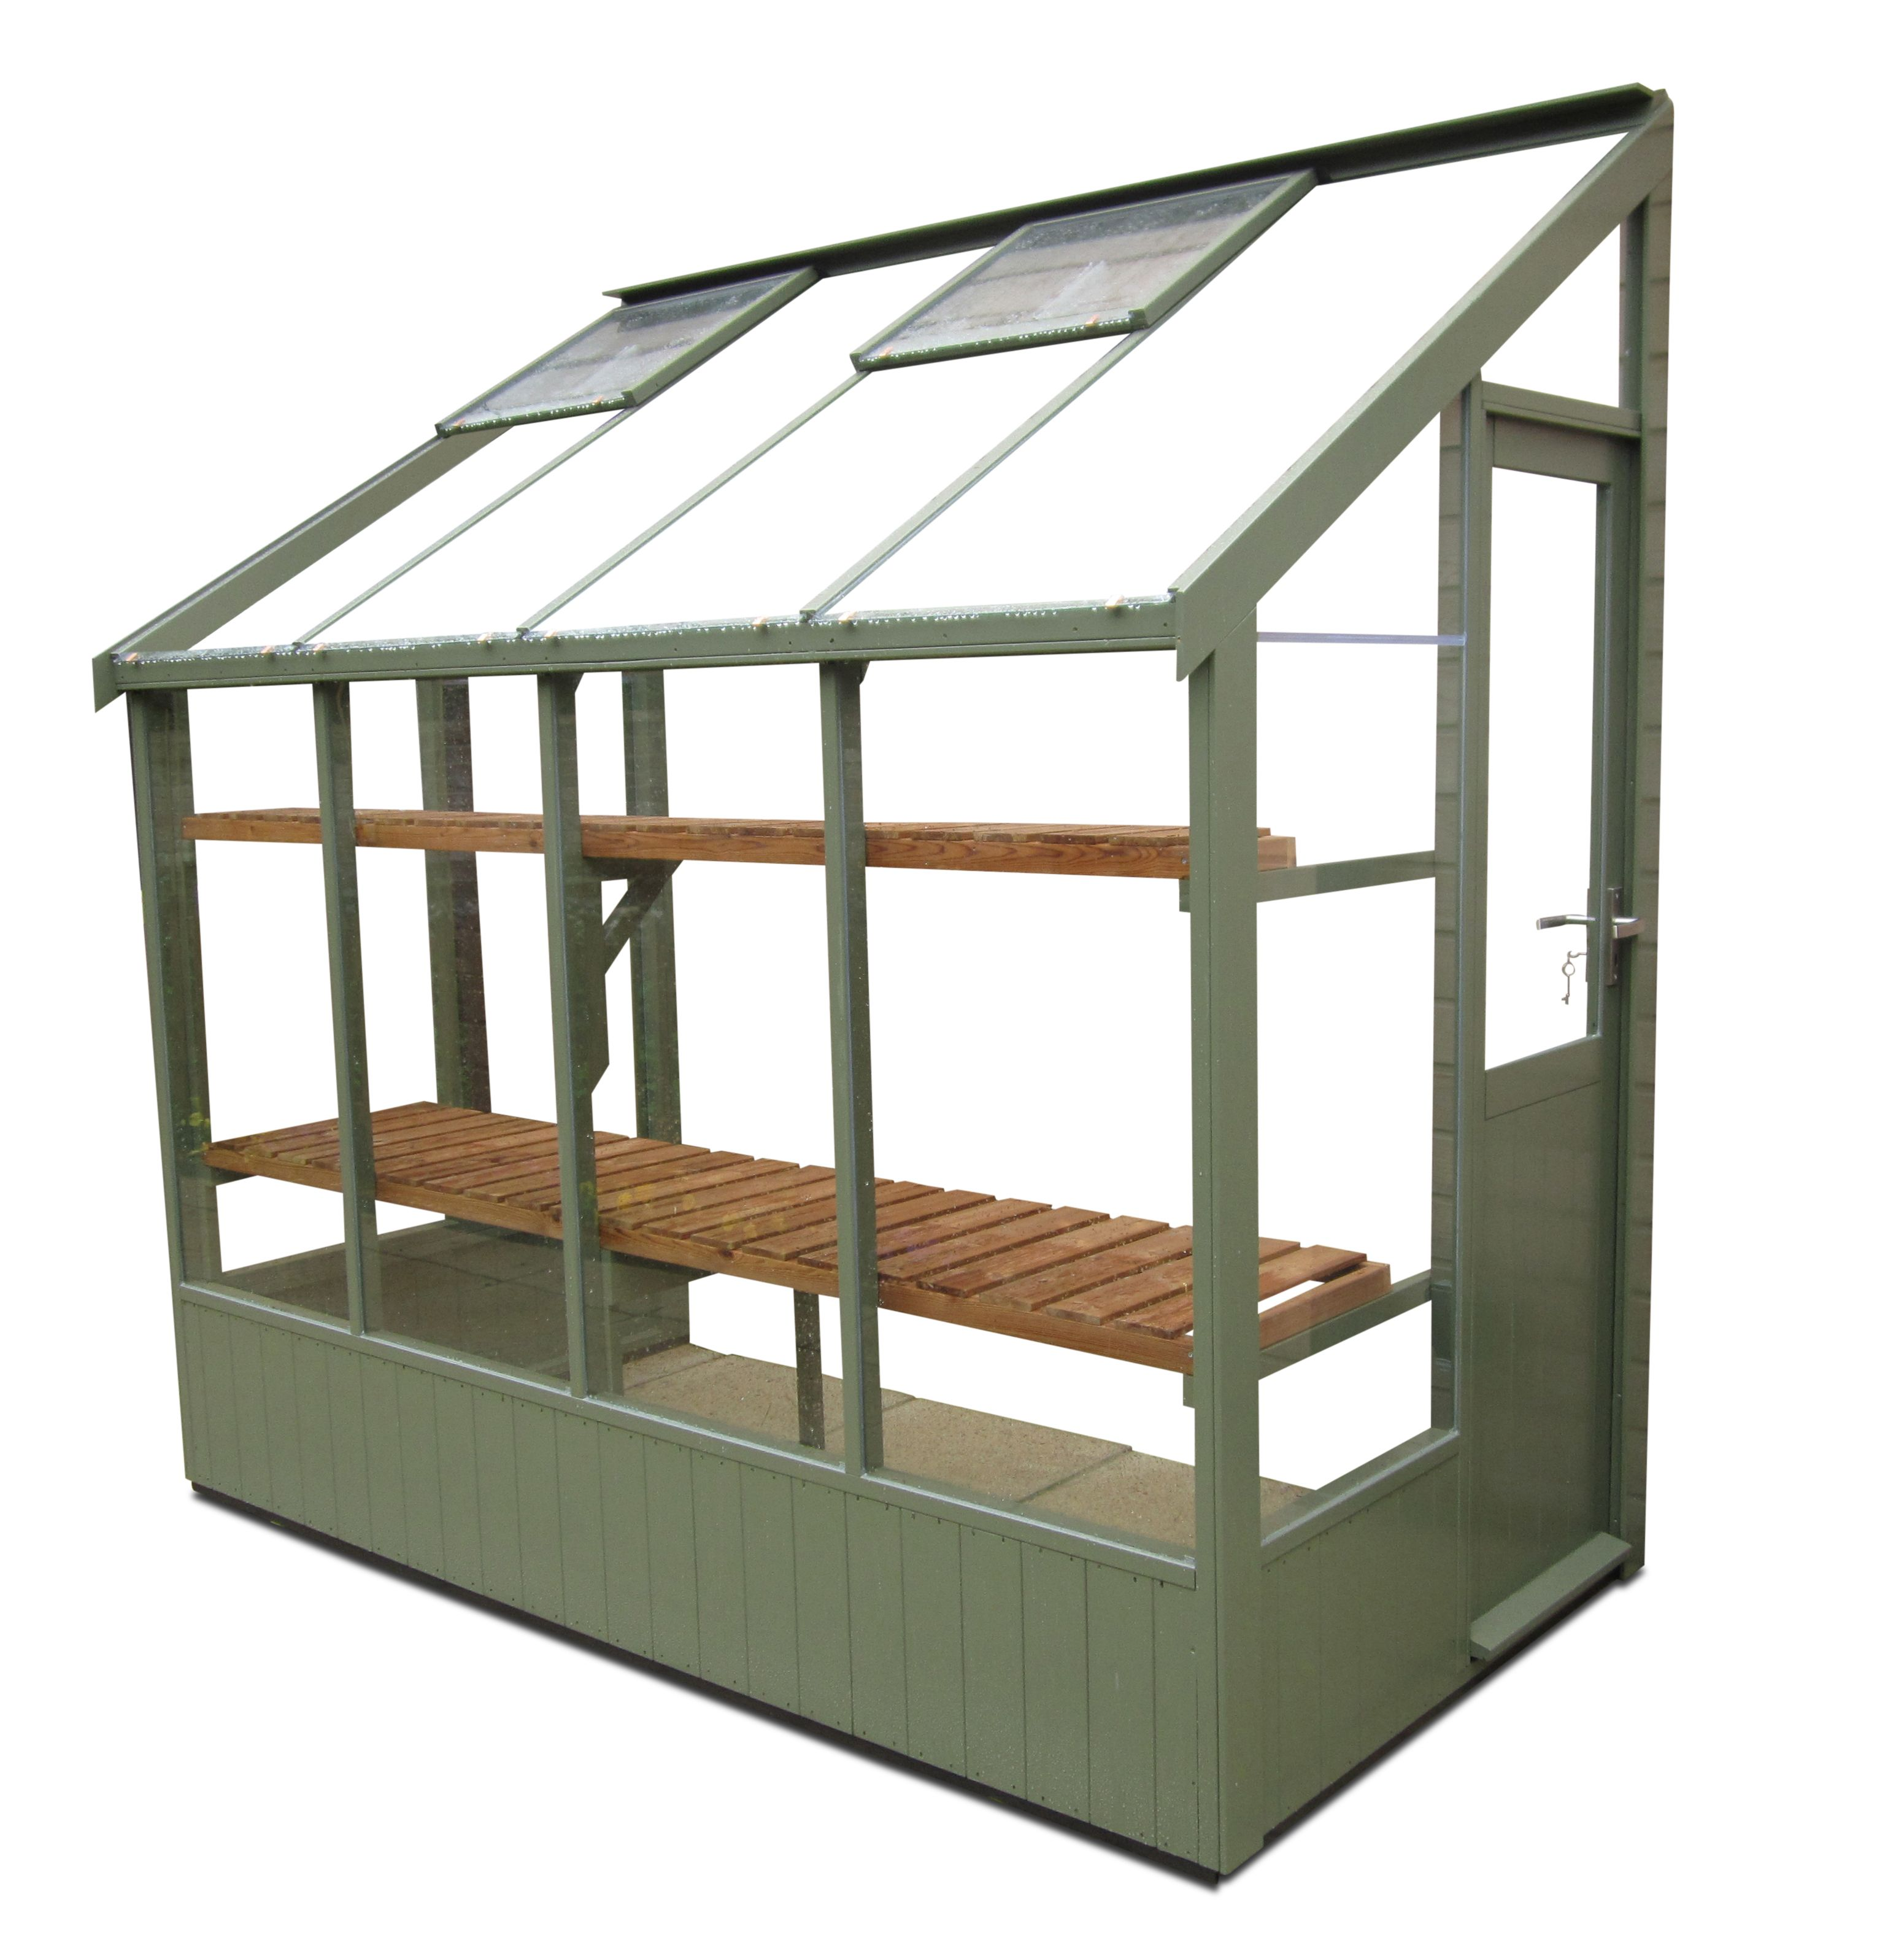 Image result for lean to greenhouse kits